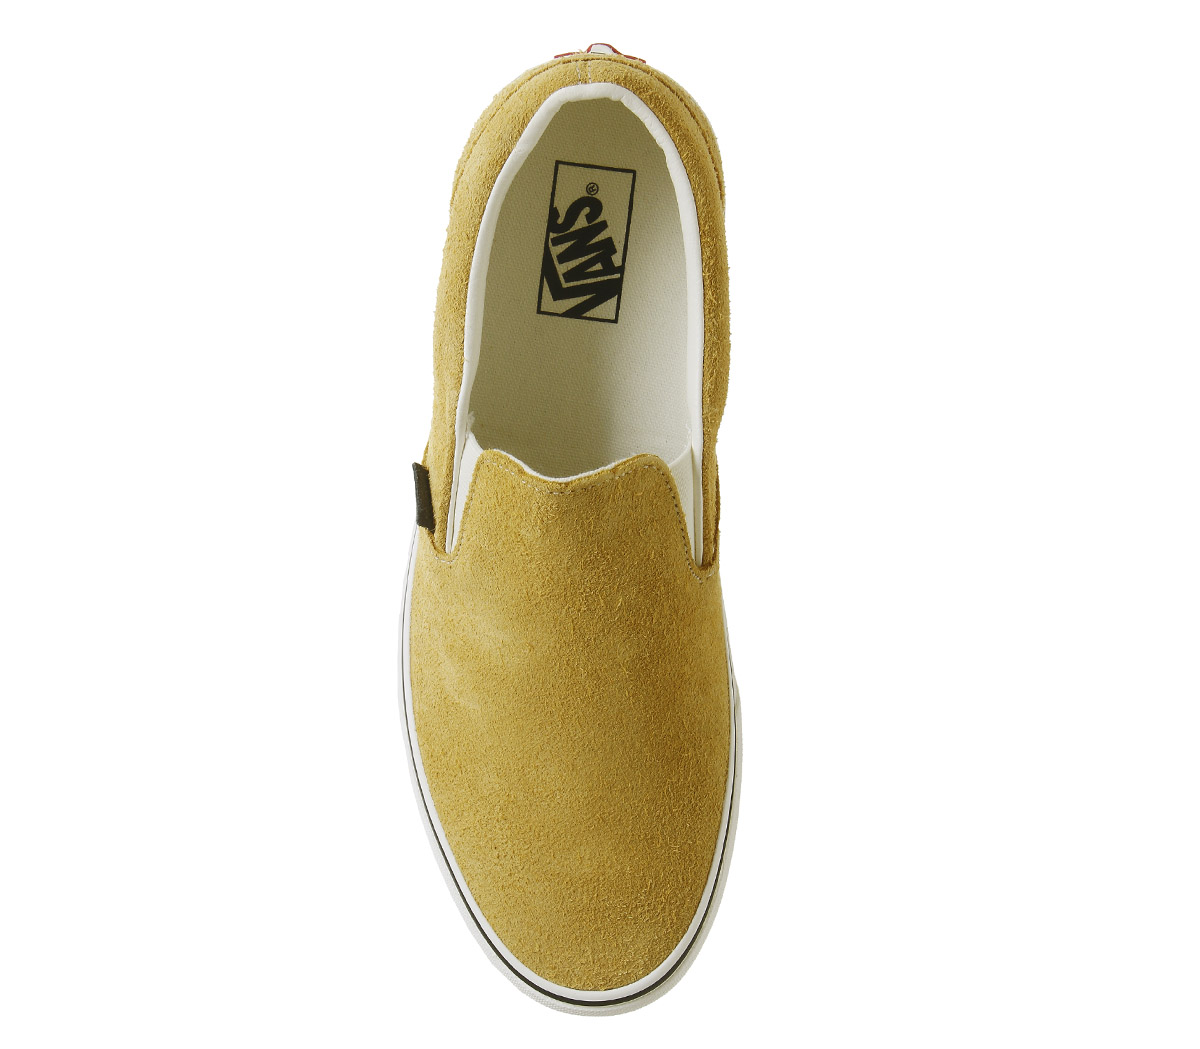 2f9df63269f Sentinel Vans Vans Classic Slip On Trainers Sunflower Snow White Hairy  Suede Trainers Sho